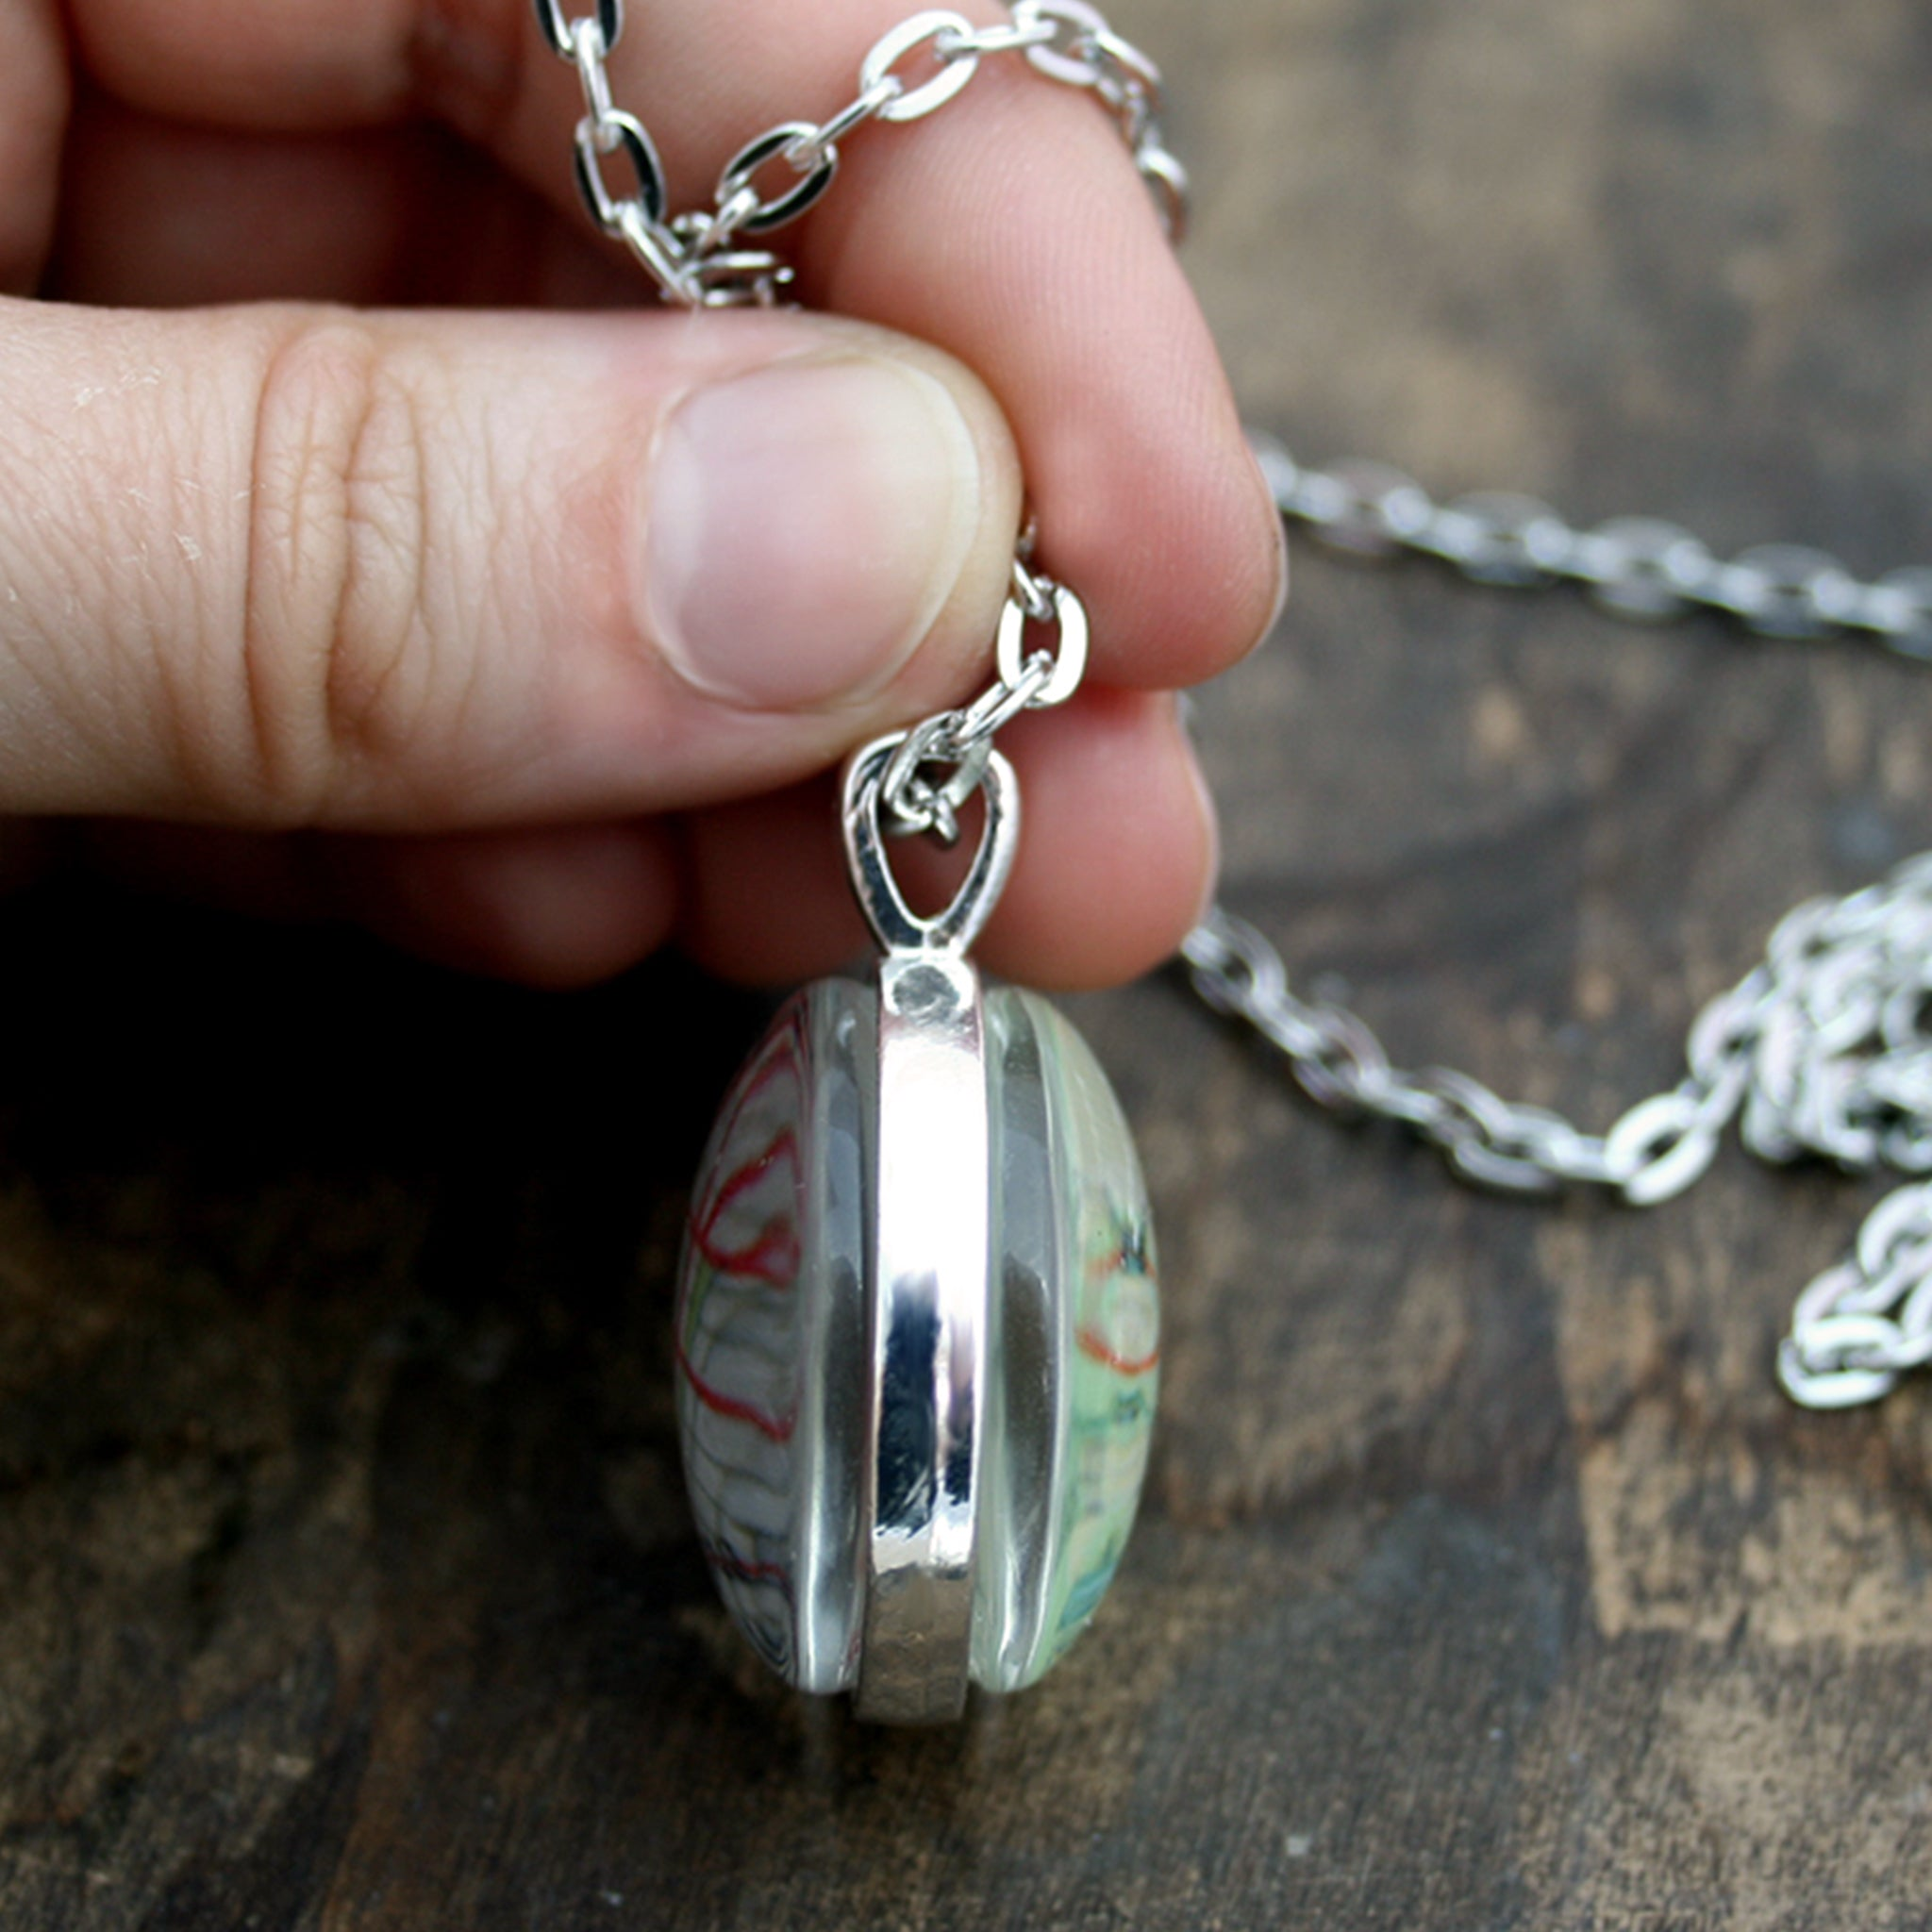 Hold in hand Silver tone double sided pendant necklace featuring maps of customers choice